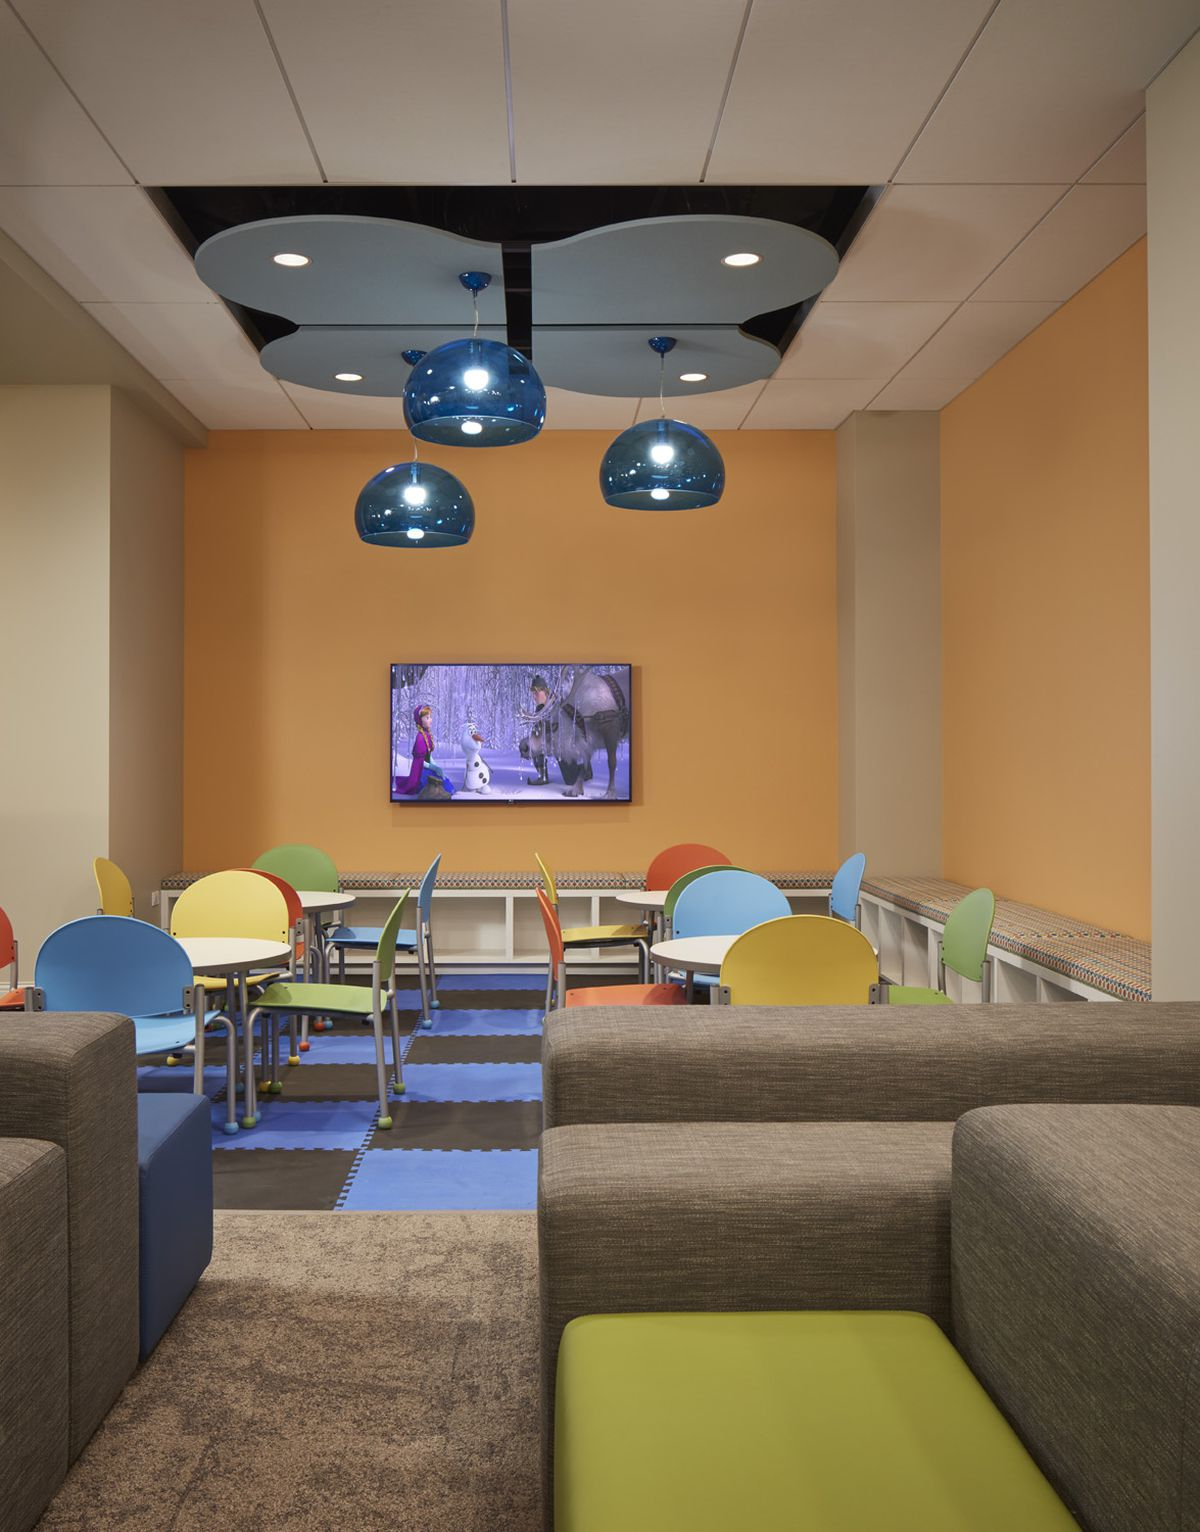 A Look at Amtraks New Metropolitan Lounge at Union